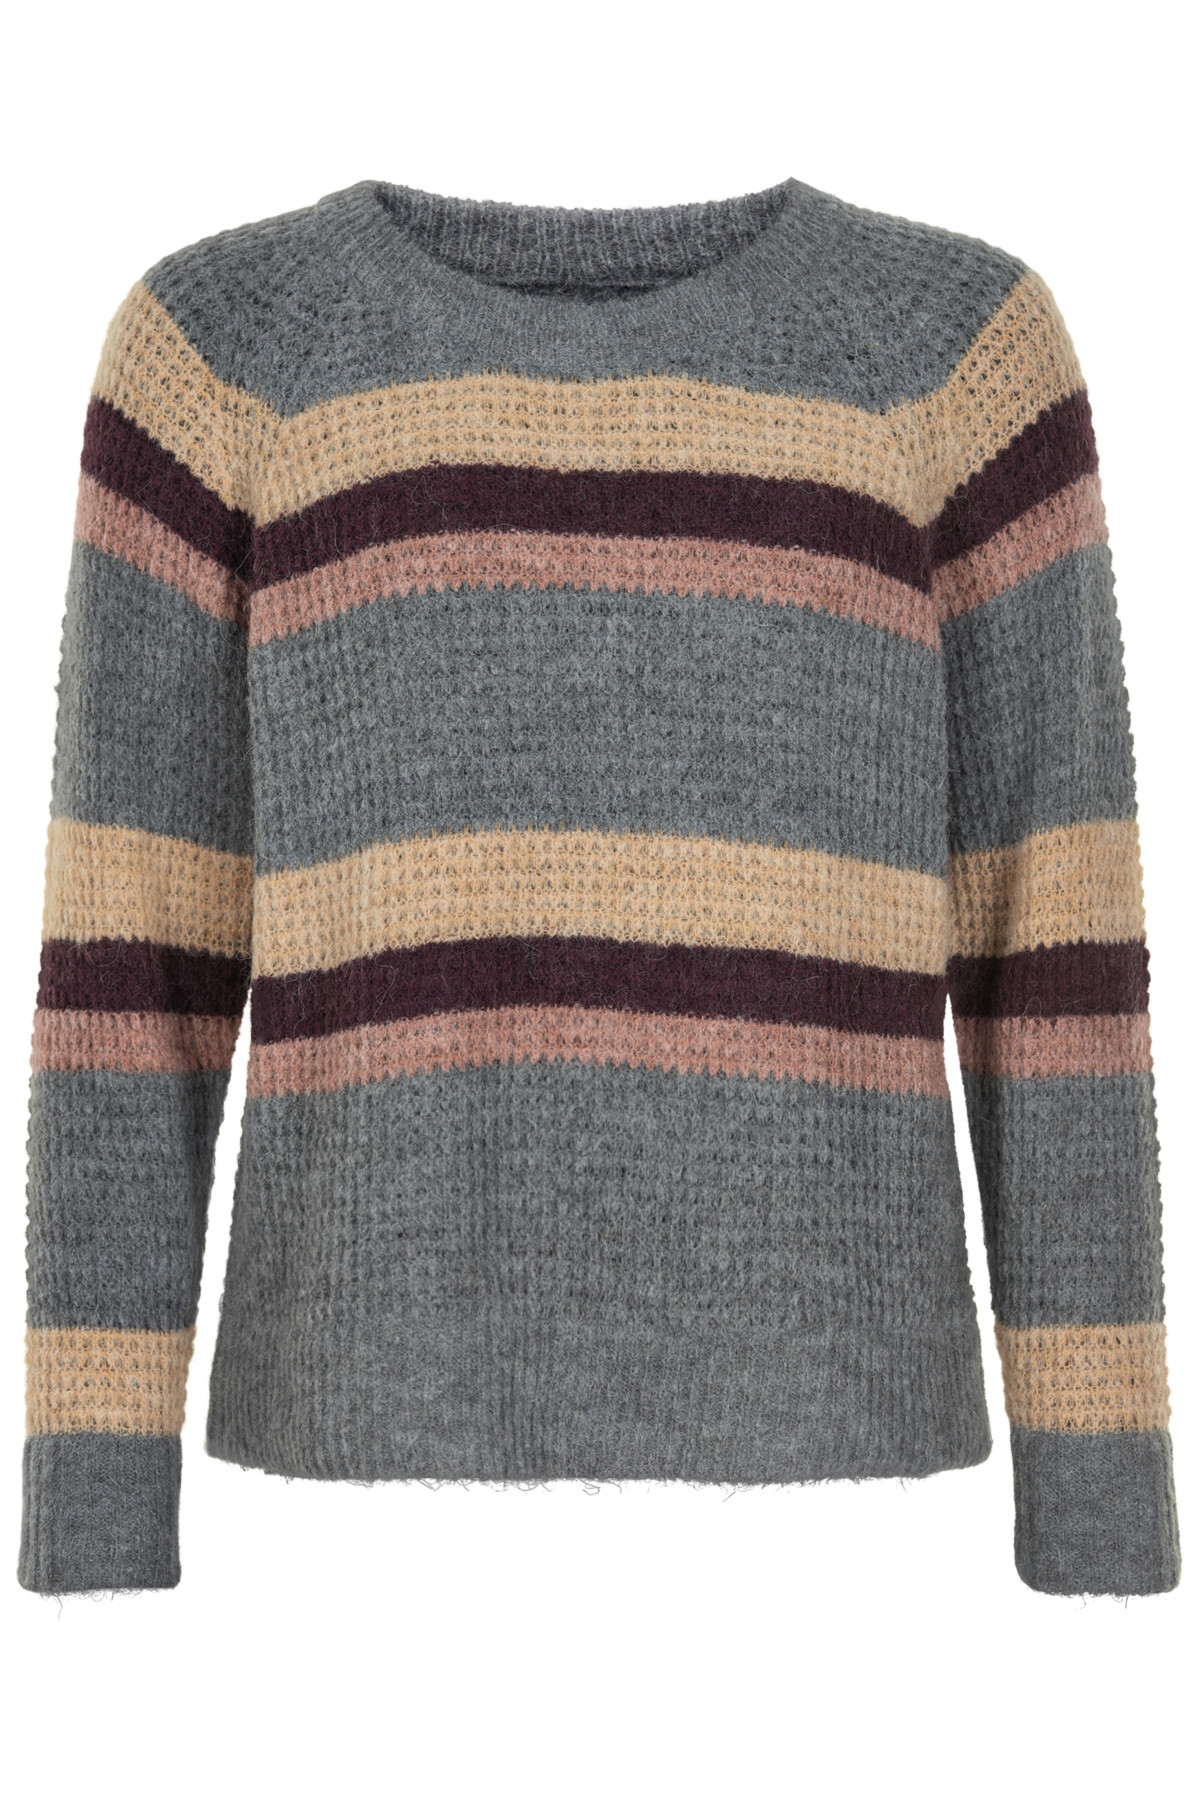 Image of   AND LESS BAMBINA PULLOVER 5419202 S (Sedona, L)